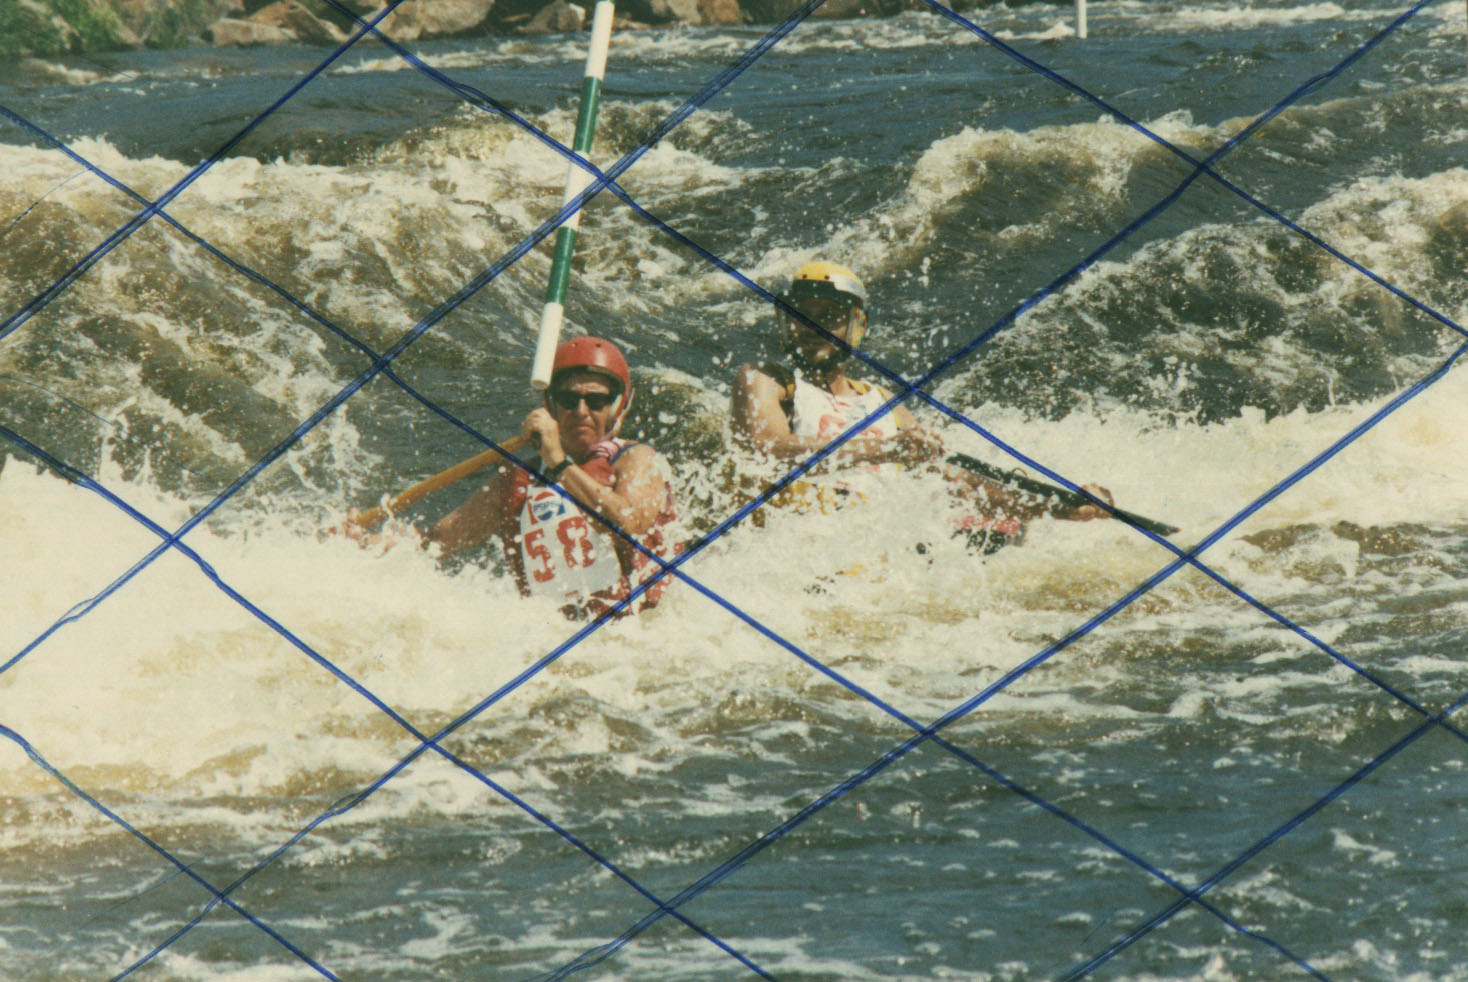 Marge and Rich running a Wausau Slalom Course.